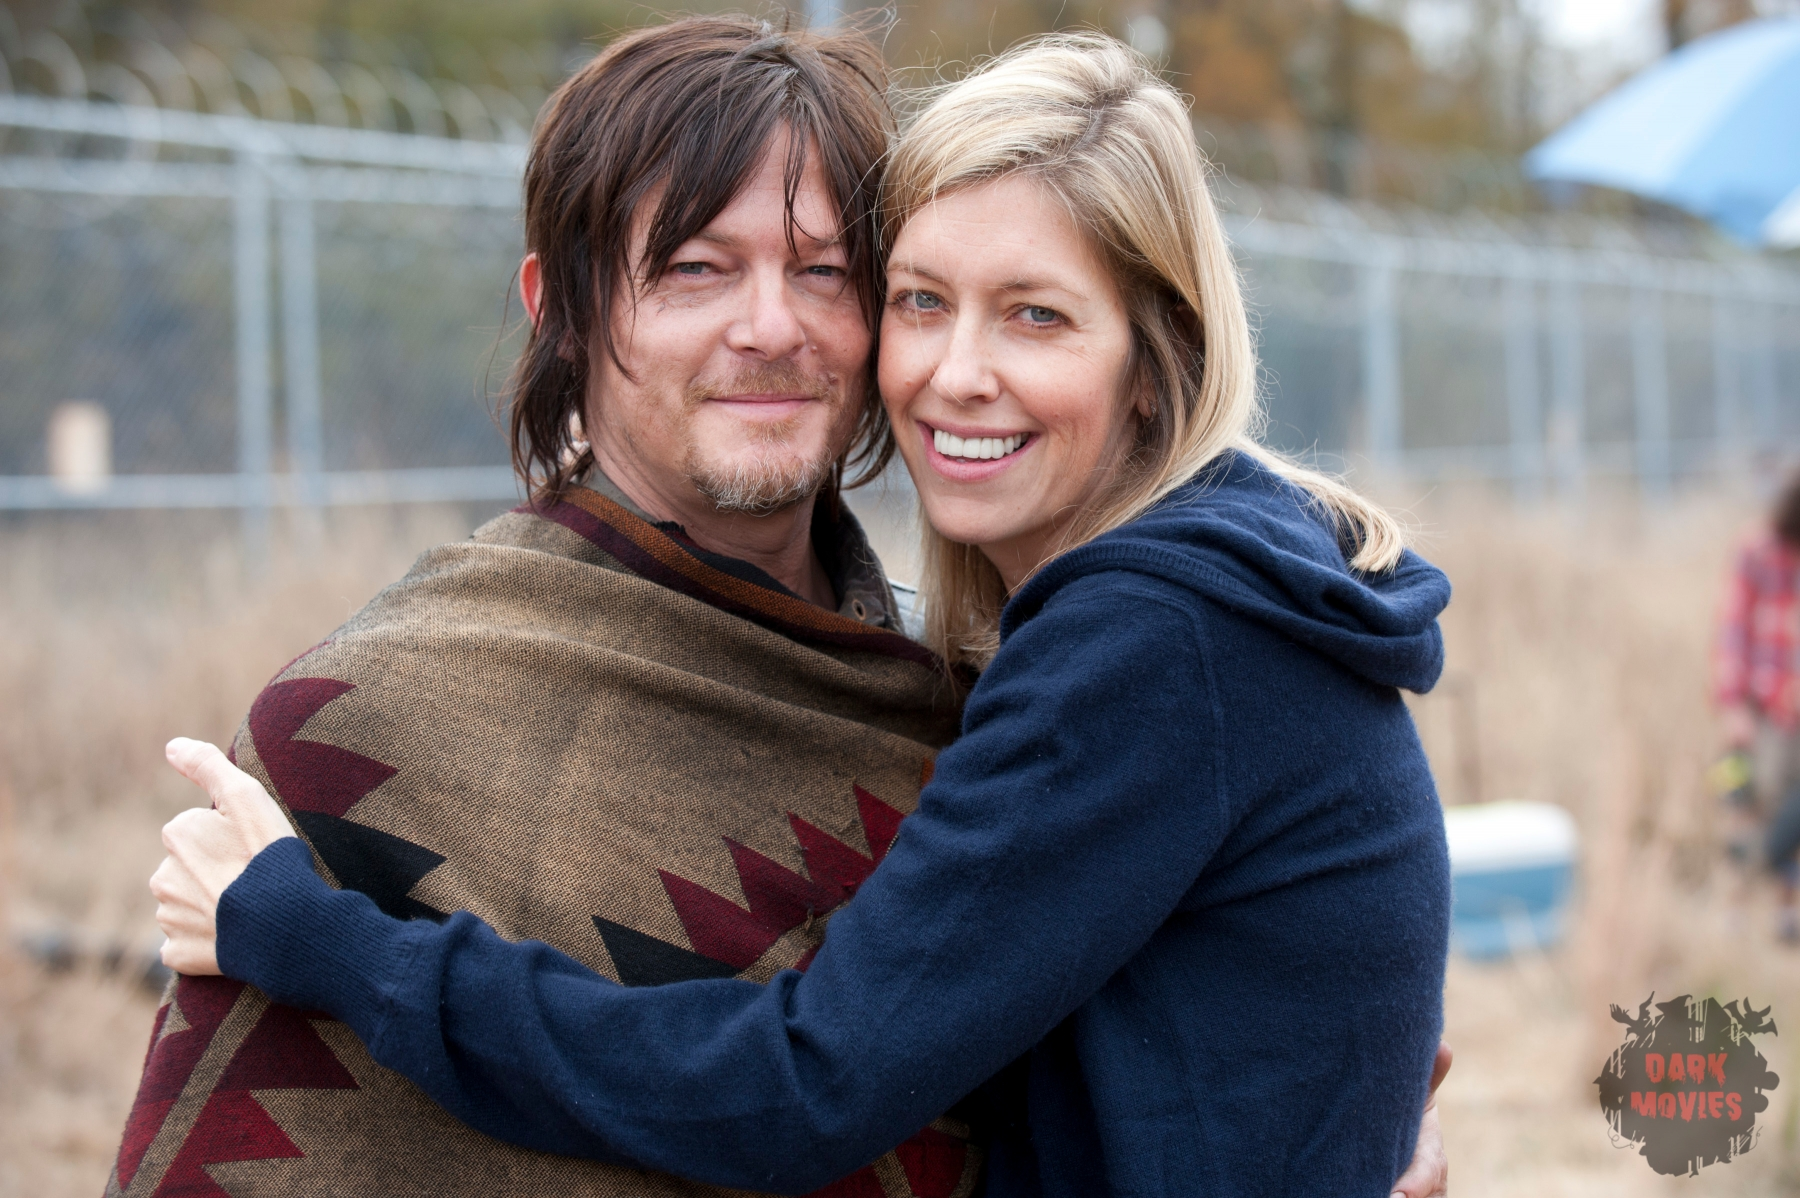 Norman Reedus and Denise Huth - The Walking Dead _ BTS - Season 4, Episode 16 - Photo Credit: Gene Page/AMC